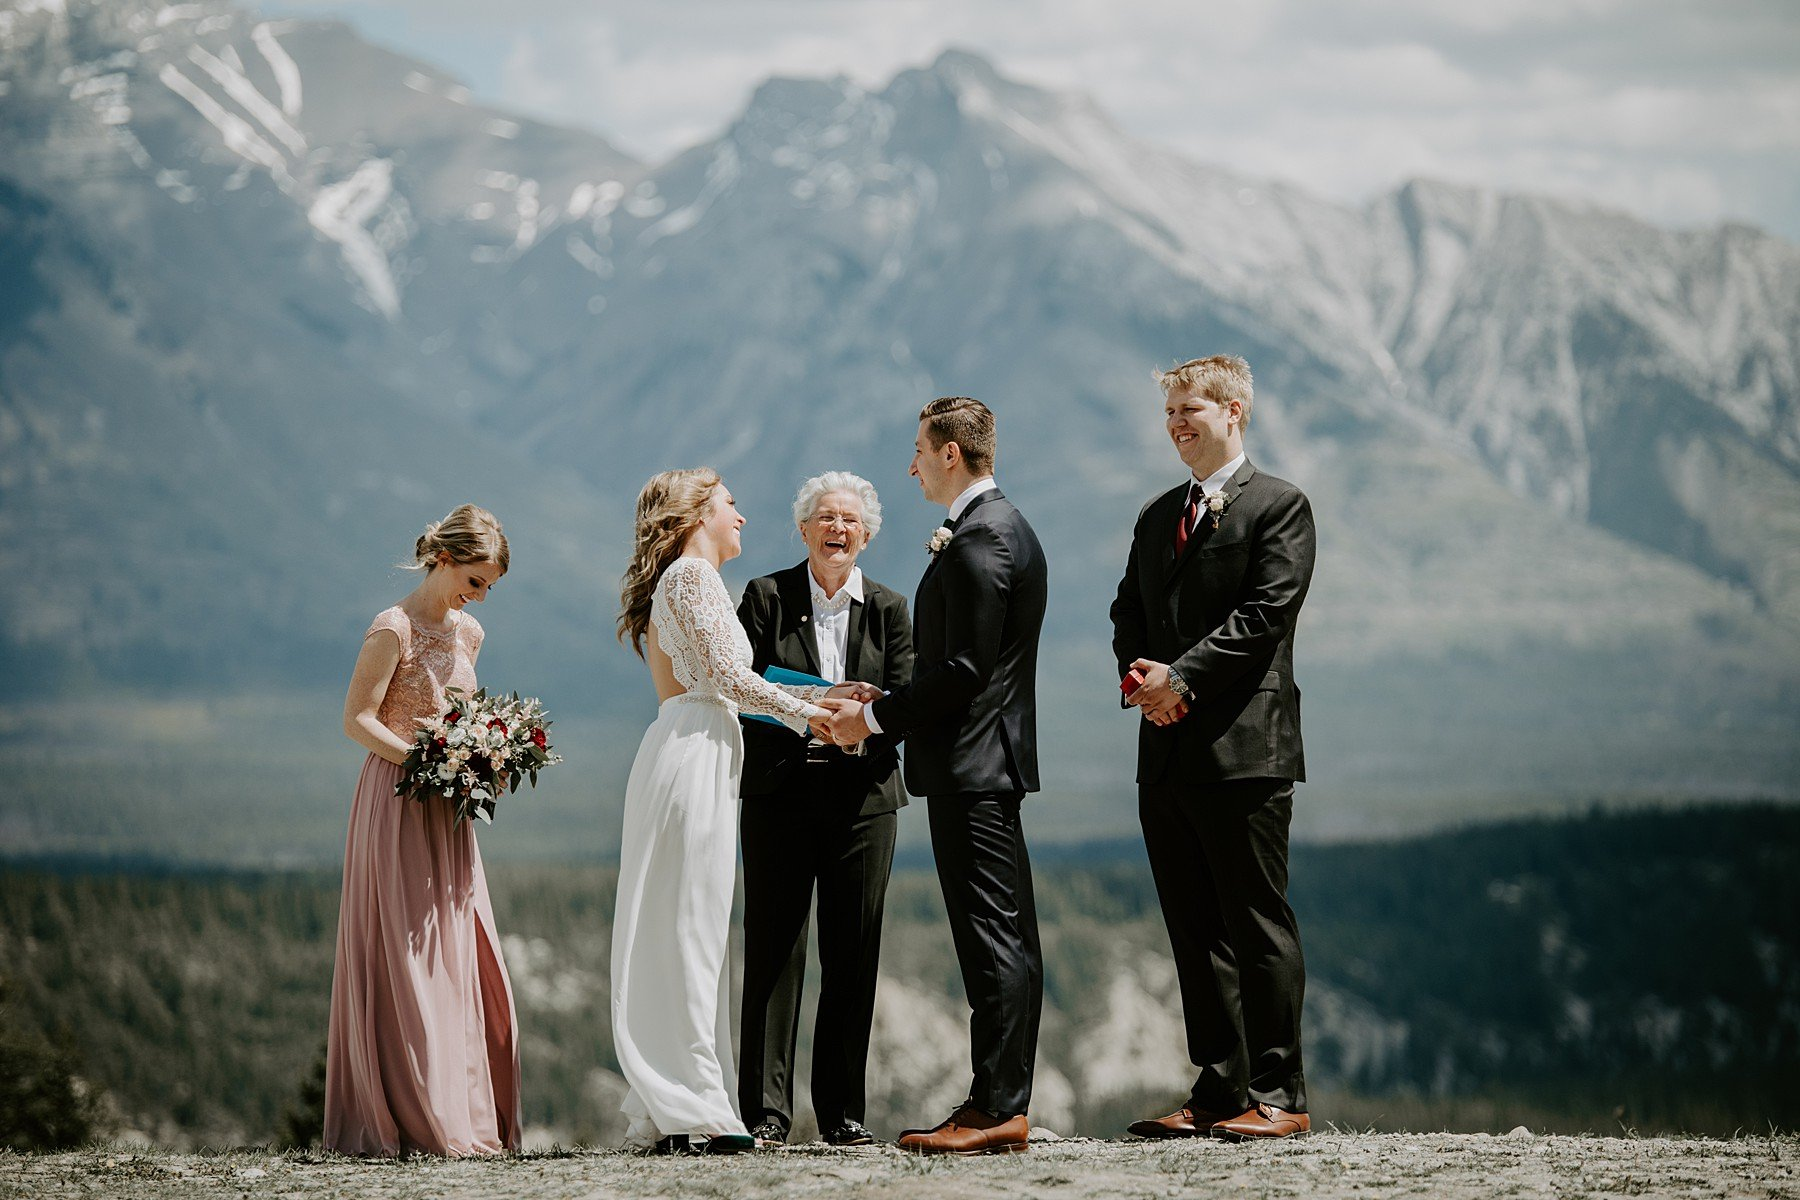 Teller of Tales Photography - Elopement - Tunnel Mountain Banff-48.jpg